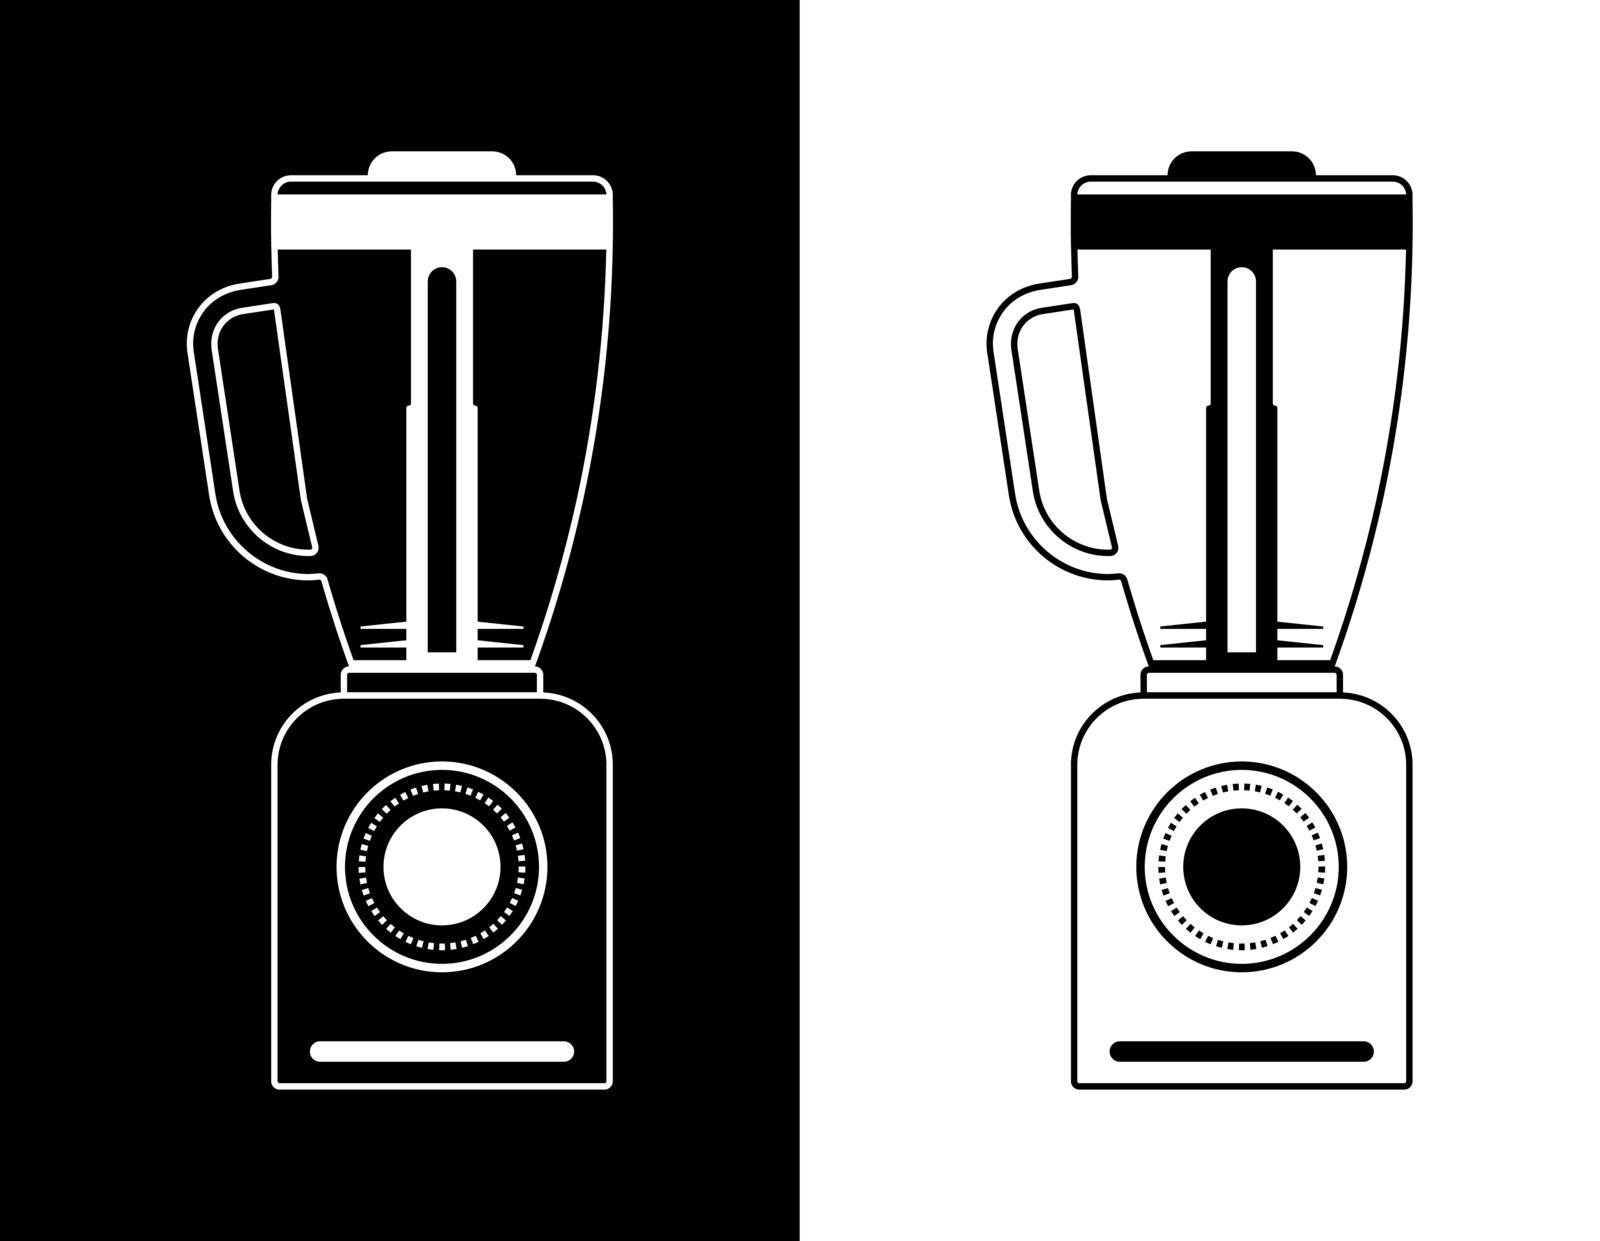 blender icon in a linear style on a black and white background. Isolated vector